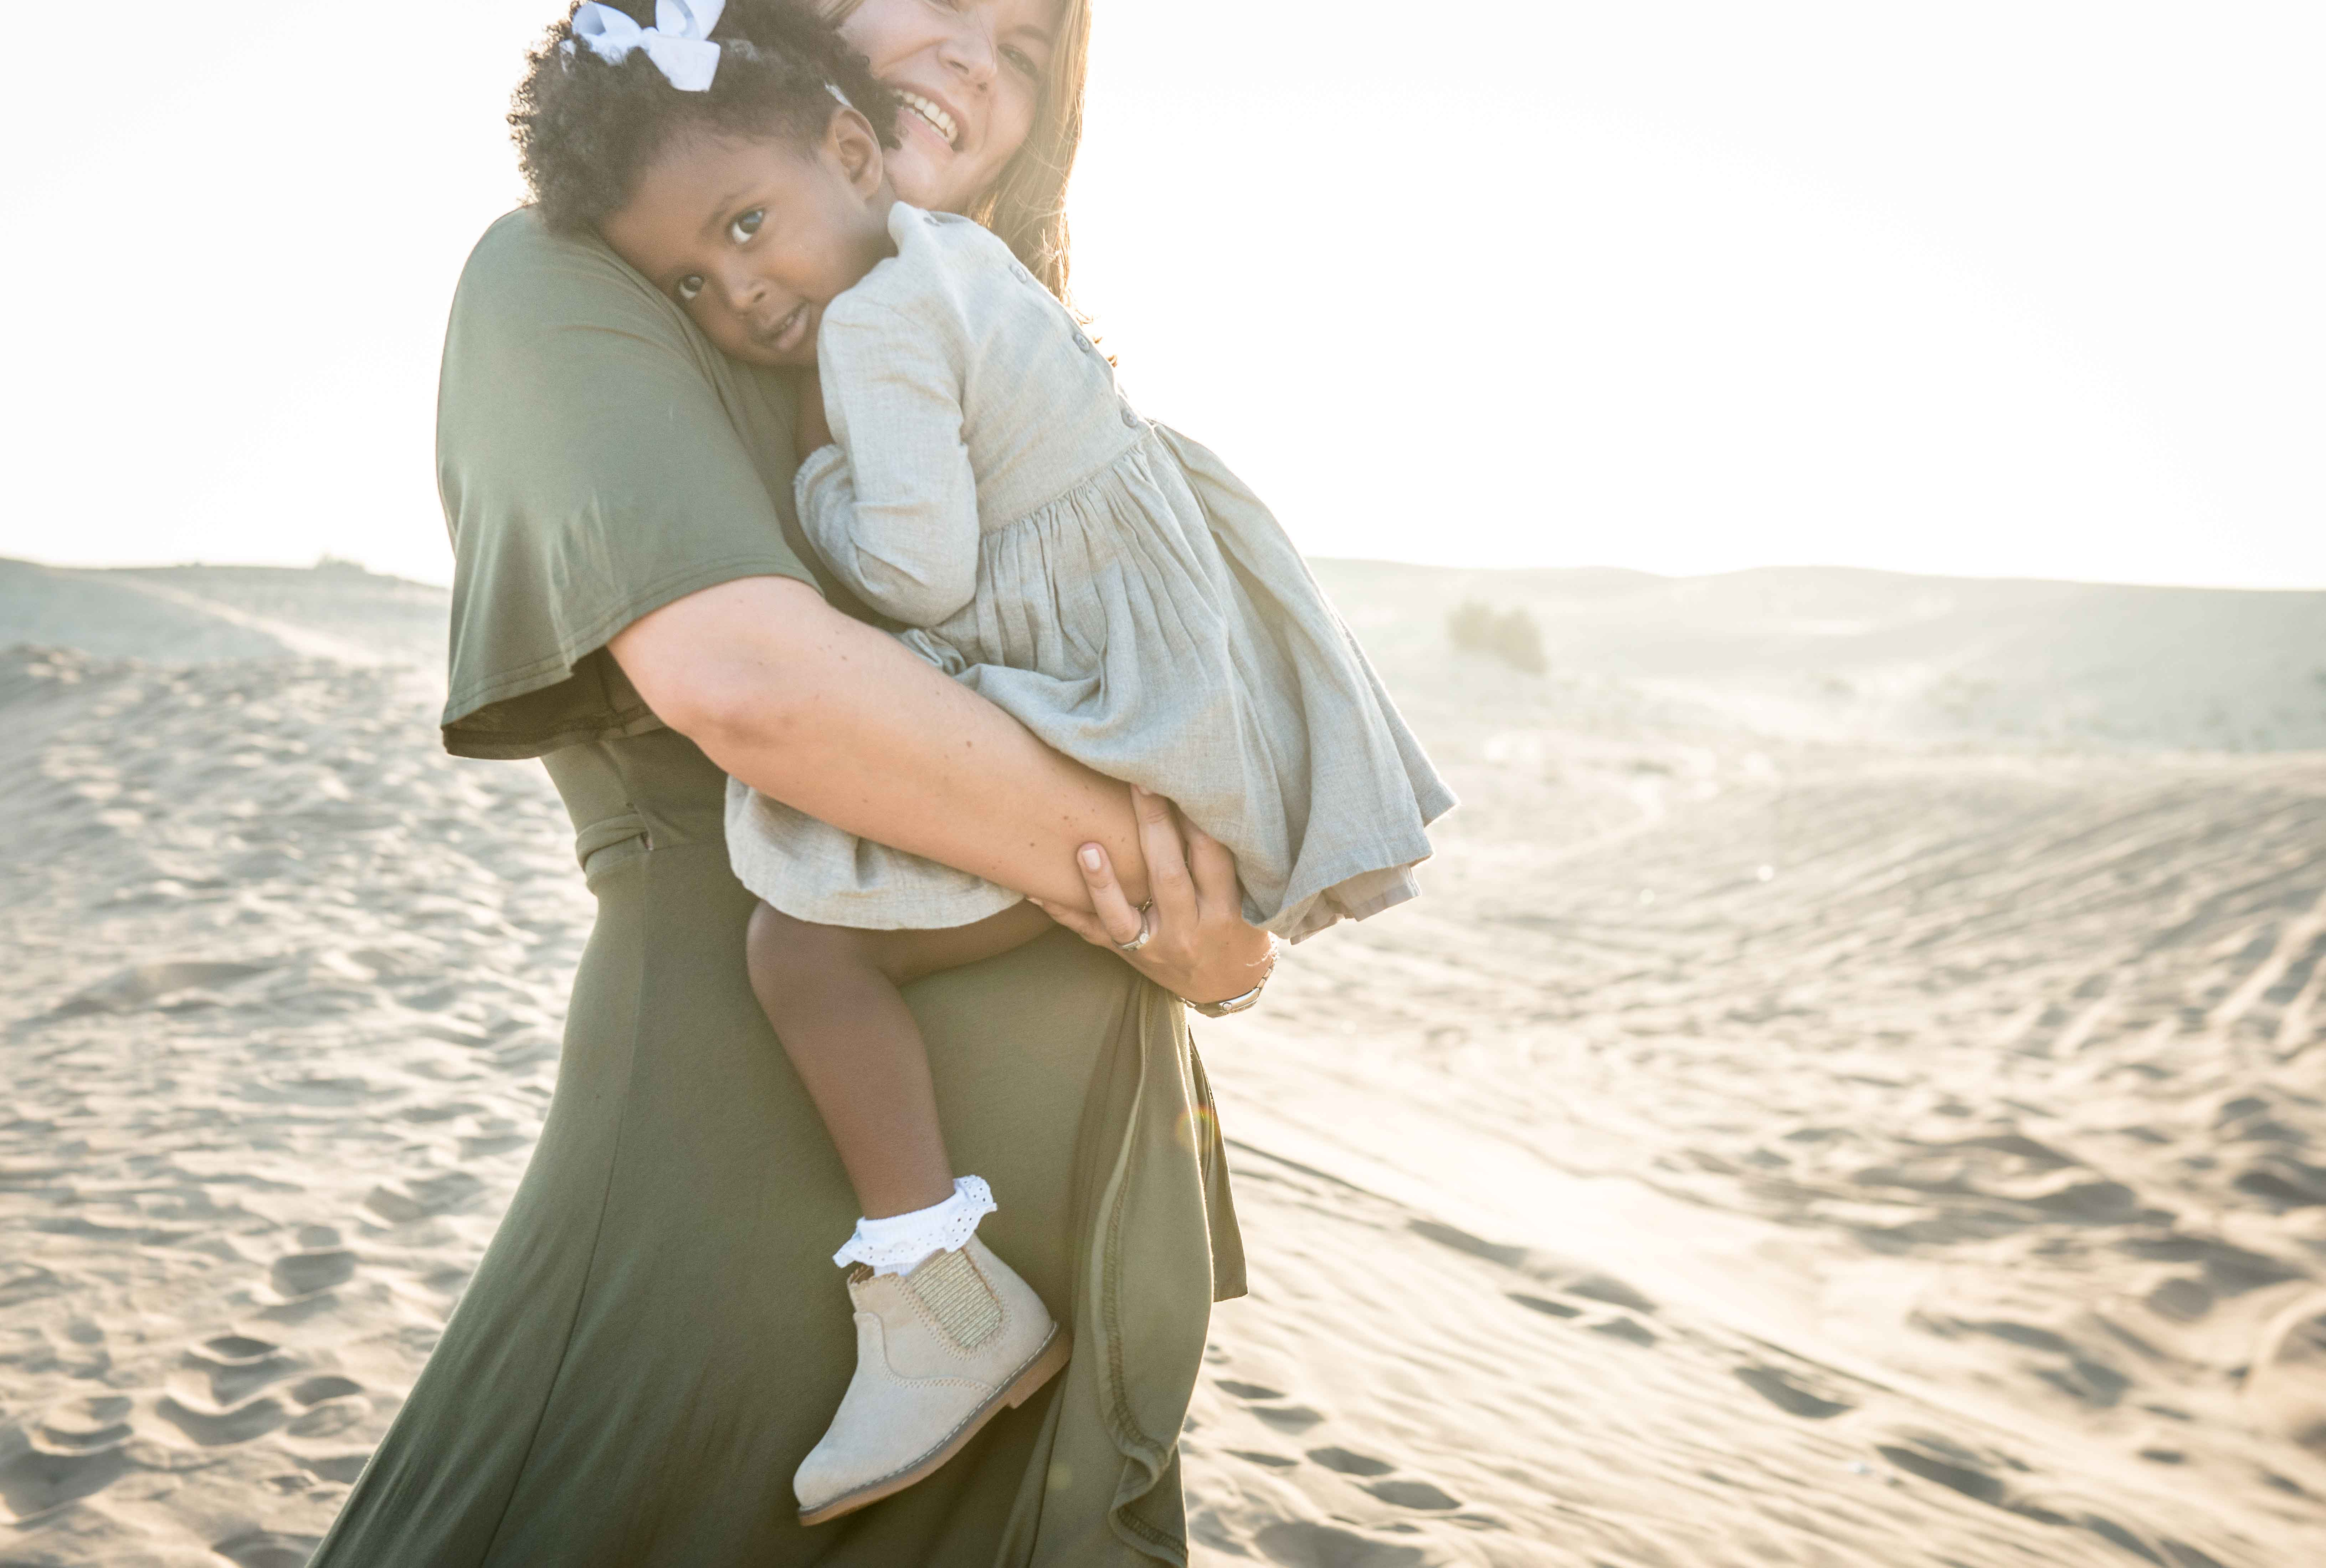 One Inspiring Mother Shares Her Journey Of Adoption